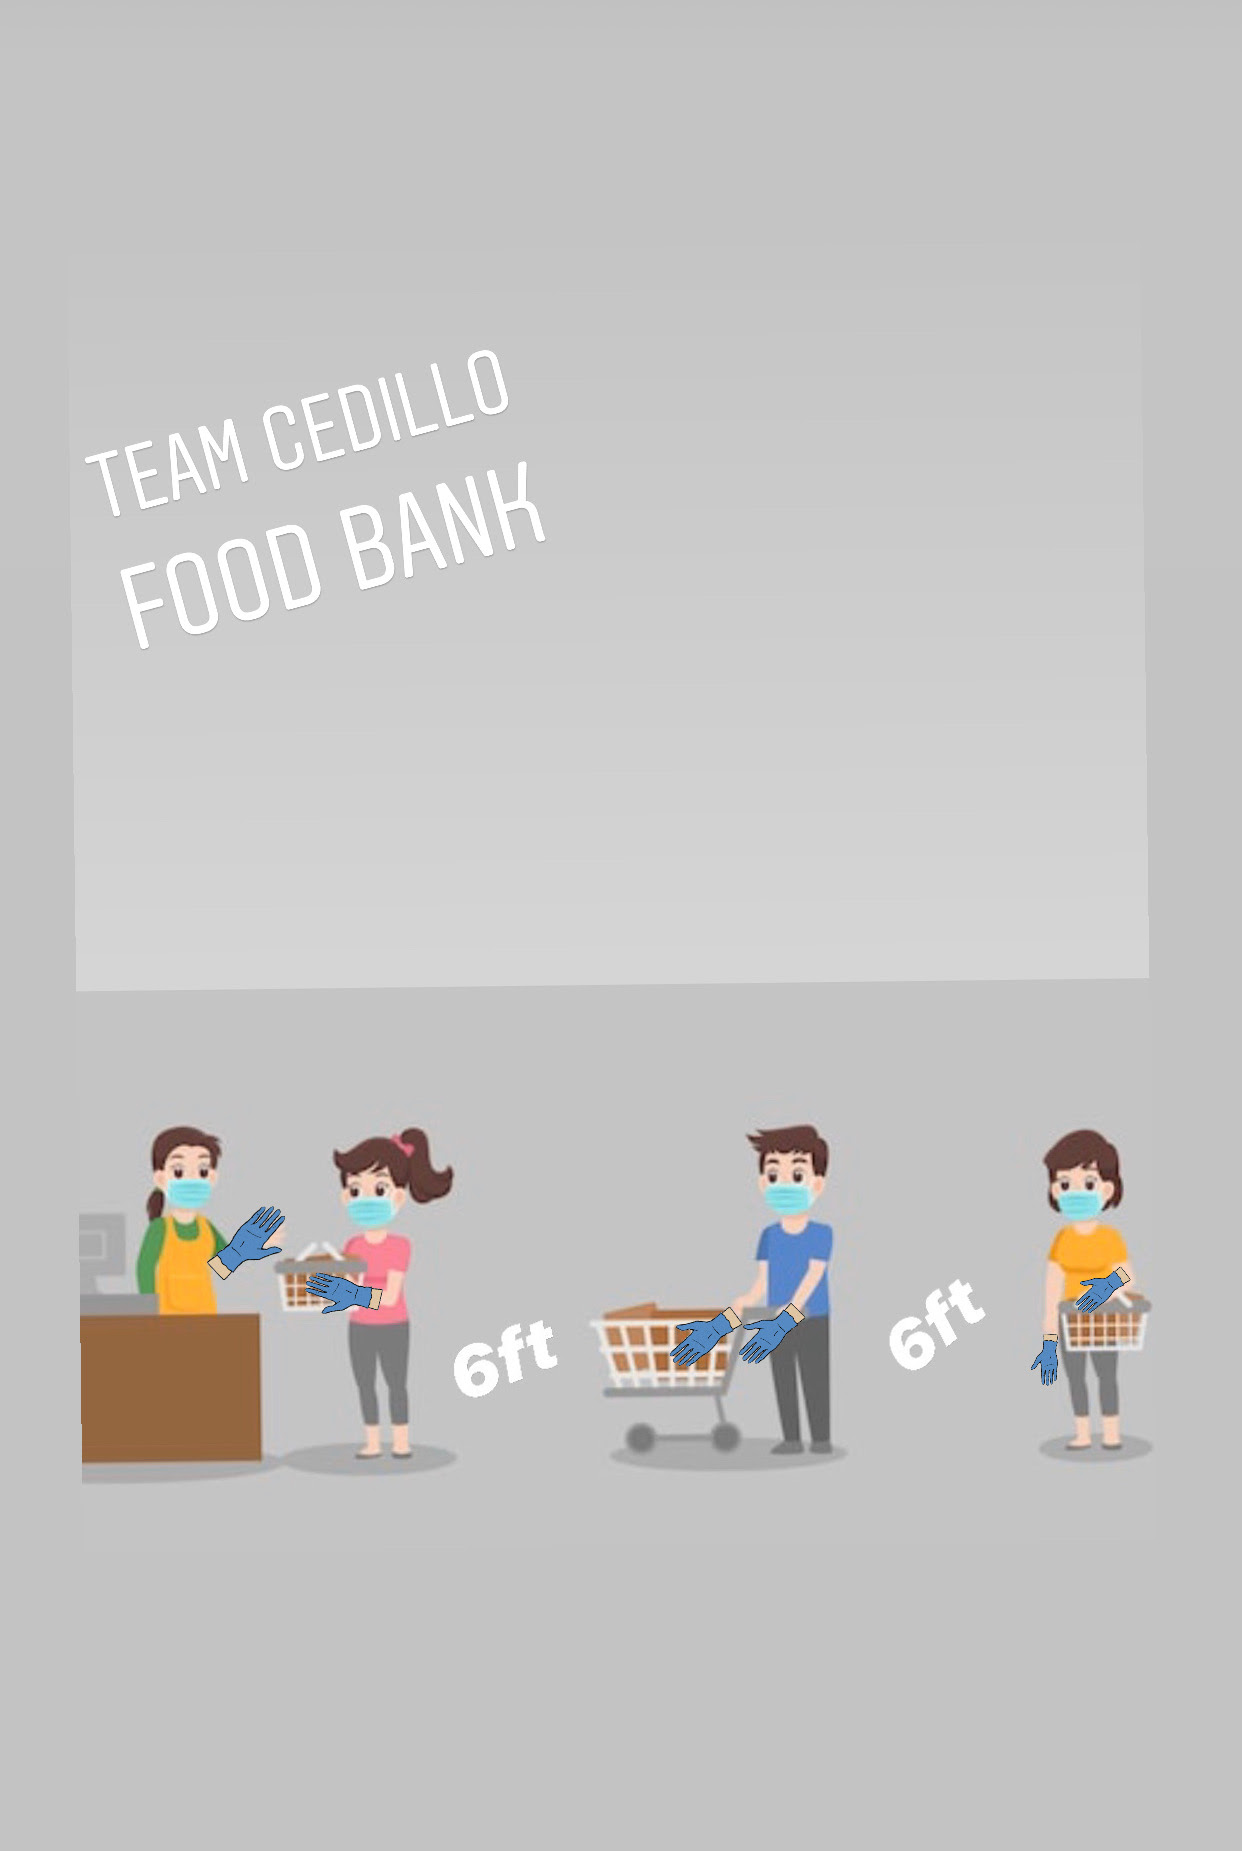 Cedillo Food Bank 6 feet apart